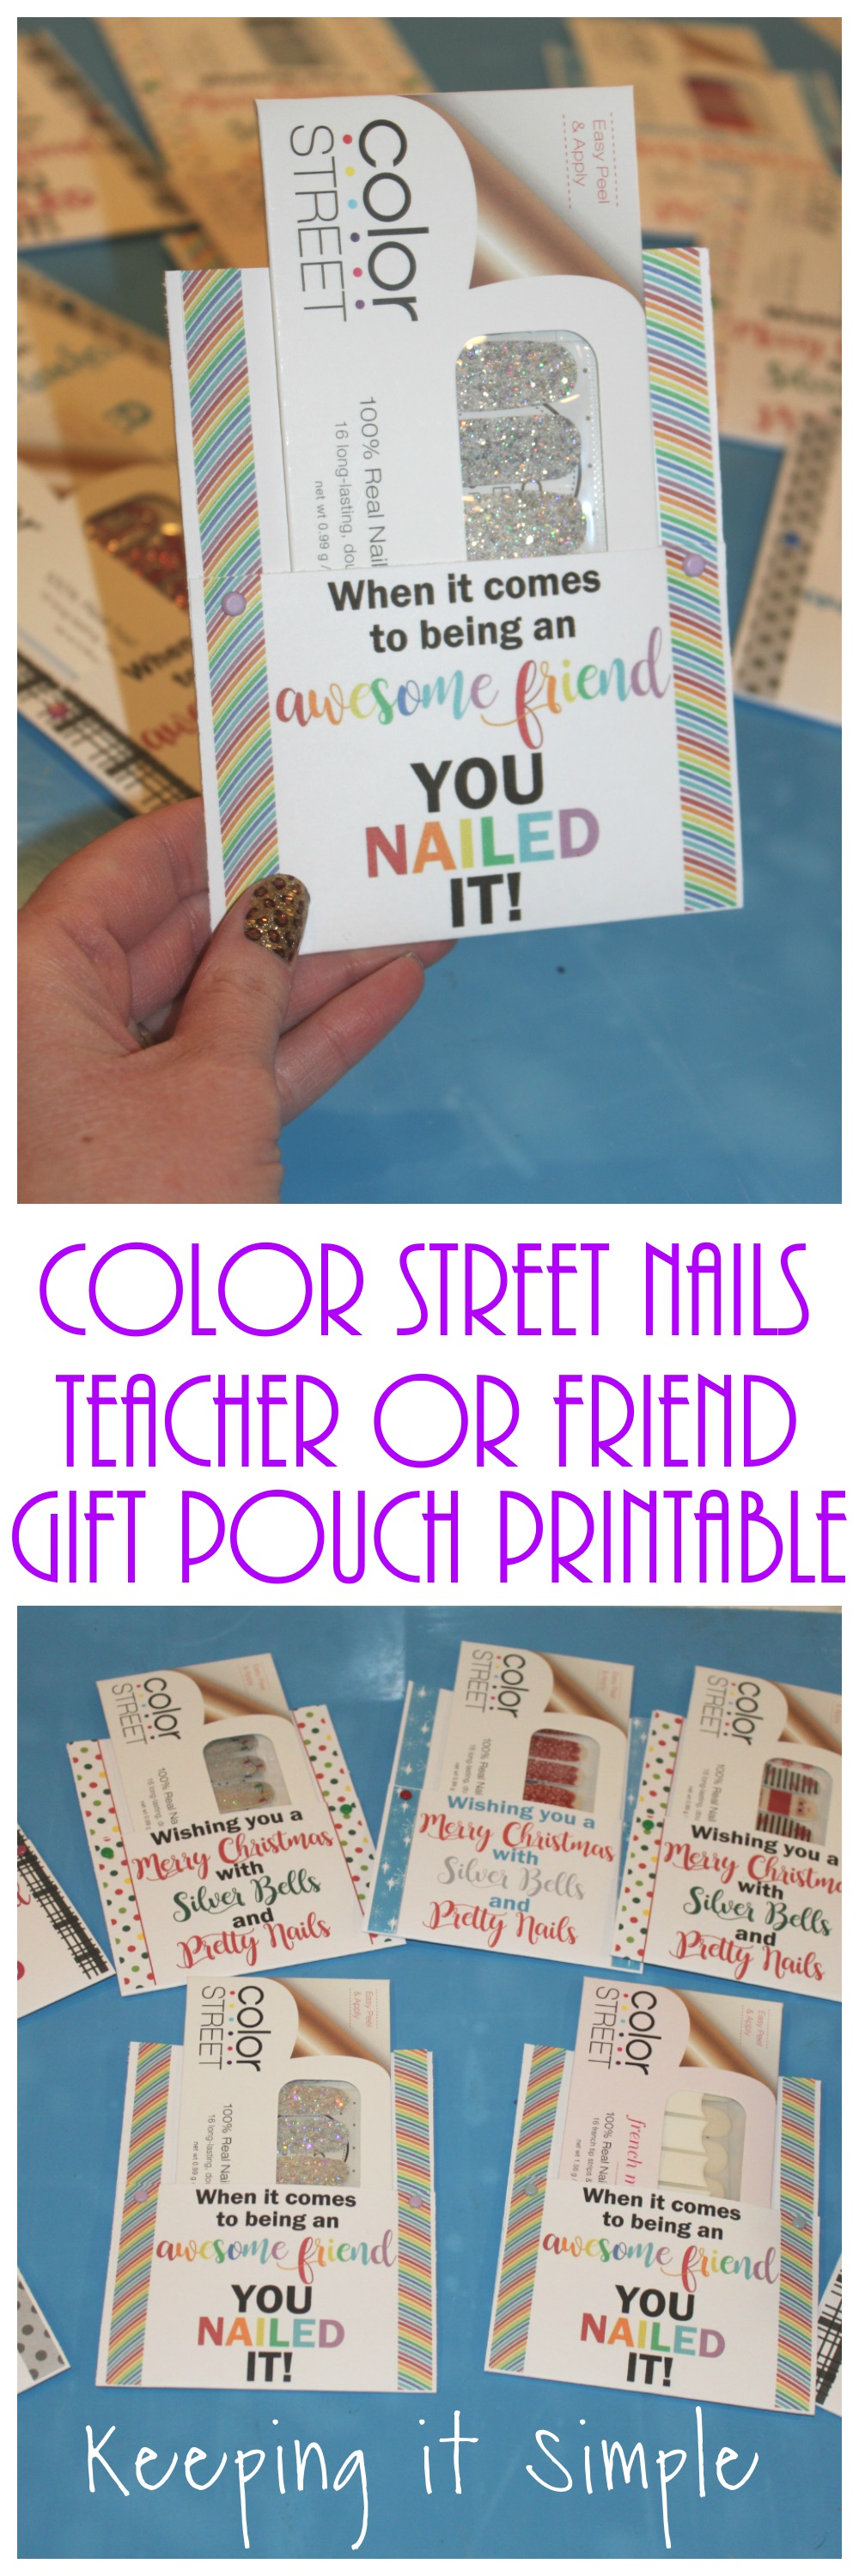 photo relating to Printable Nails referred to as Colour Highway Nails Instructor or Mate Present Pouch Printable